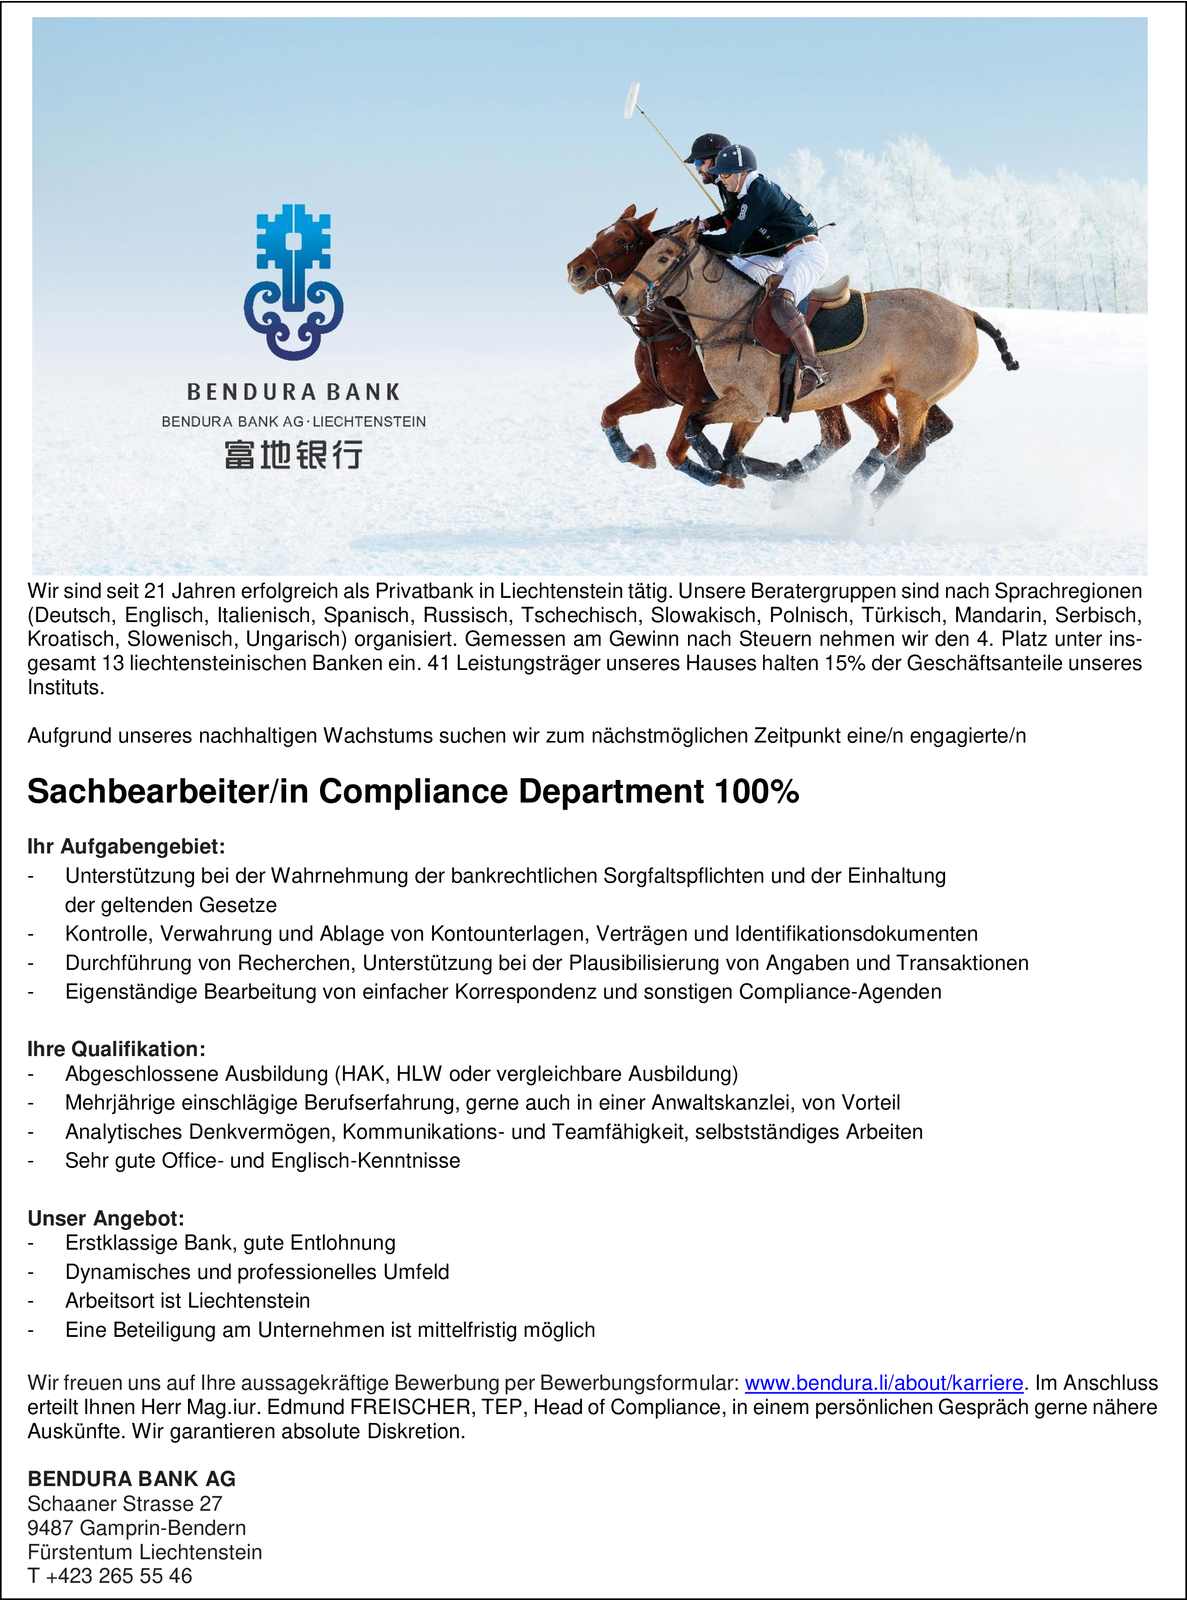 Sachbearbeiter/in Compliance Department 100%